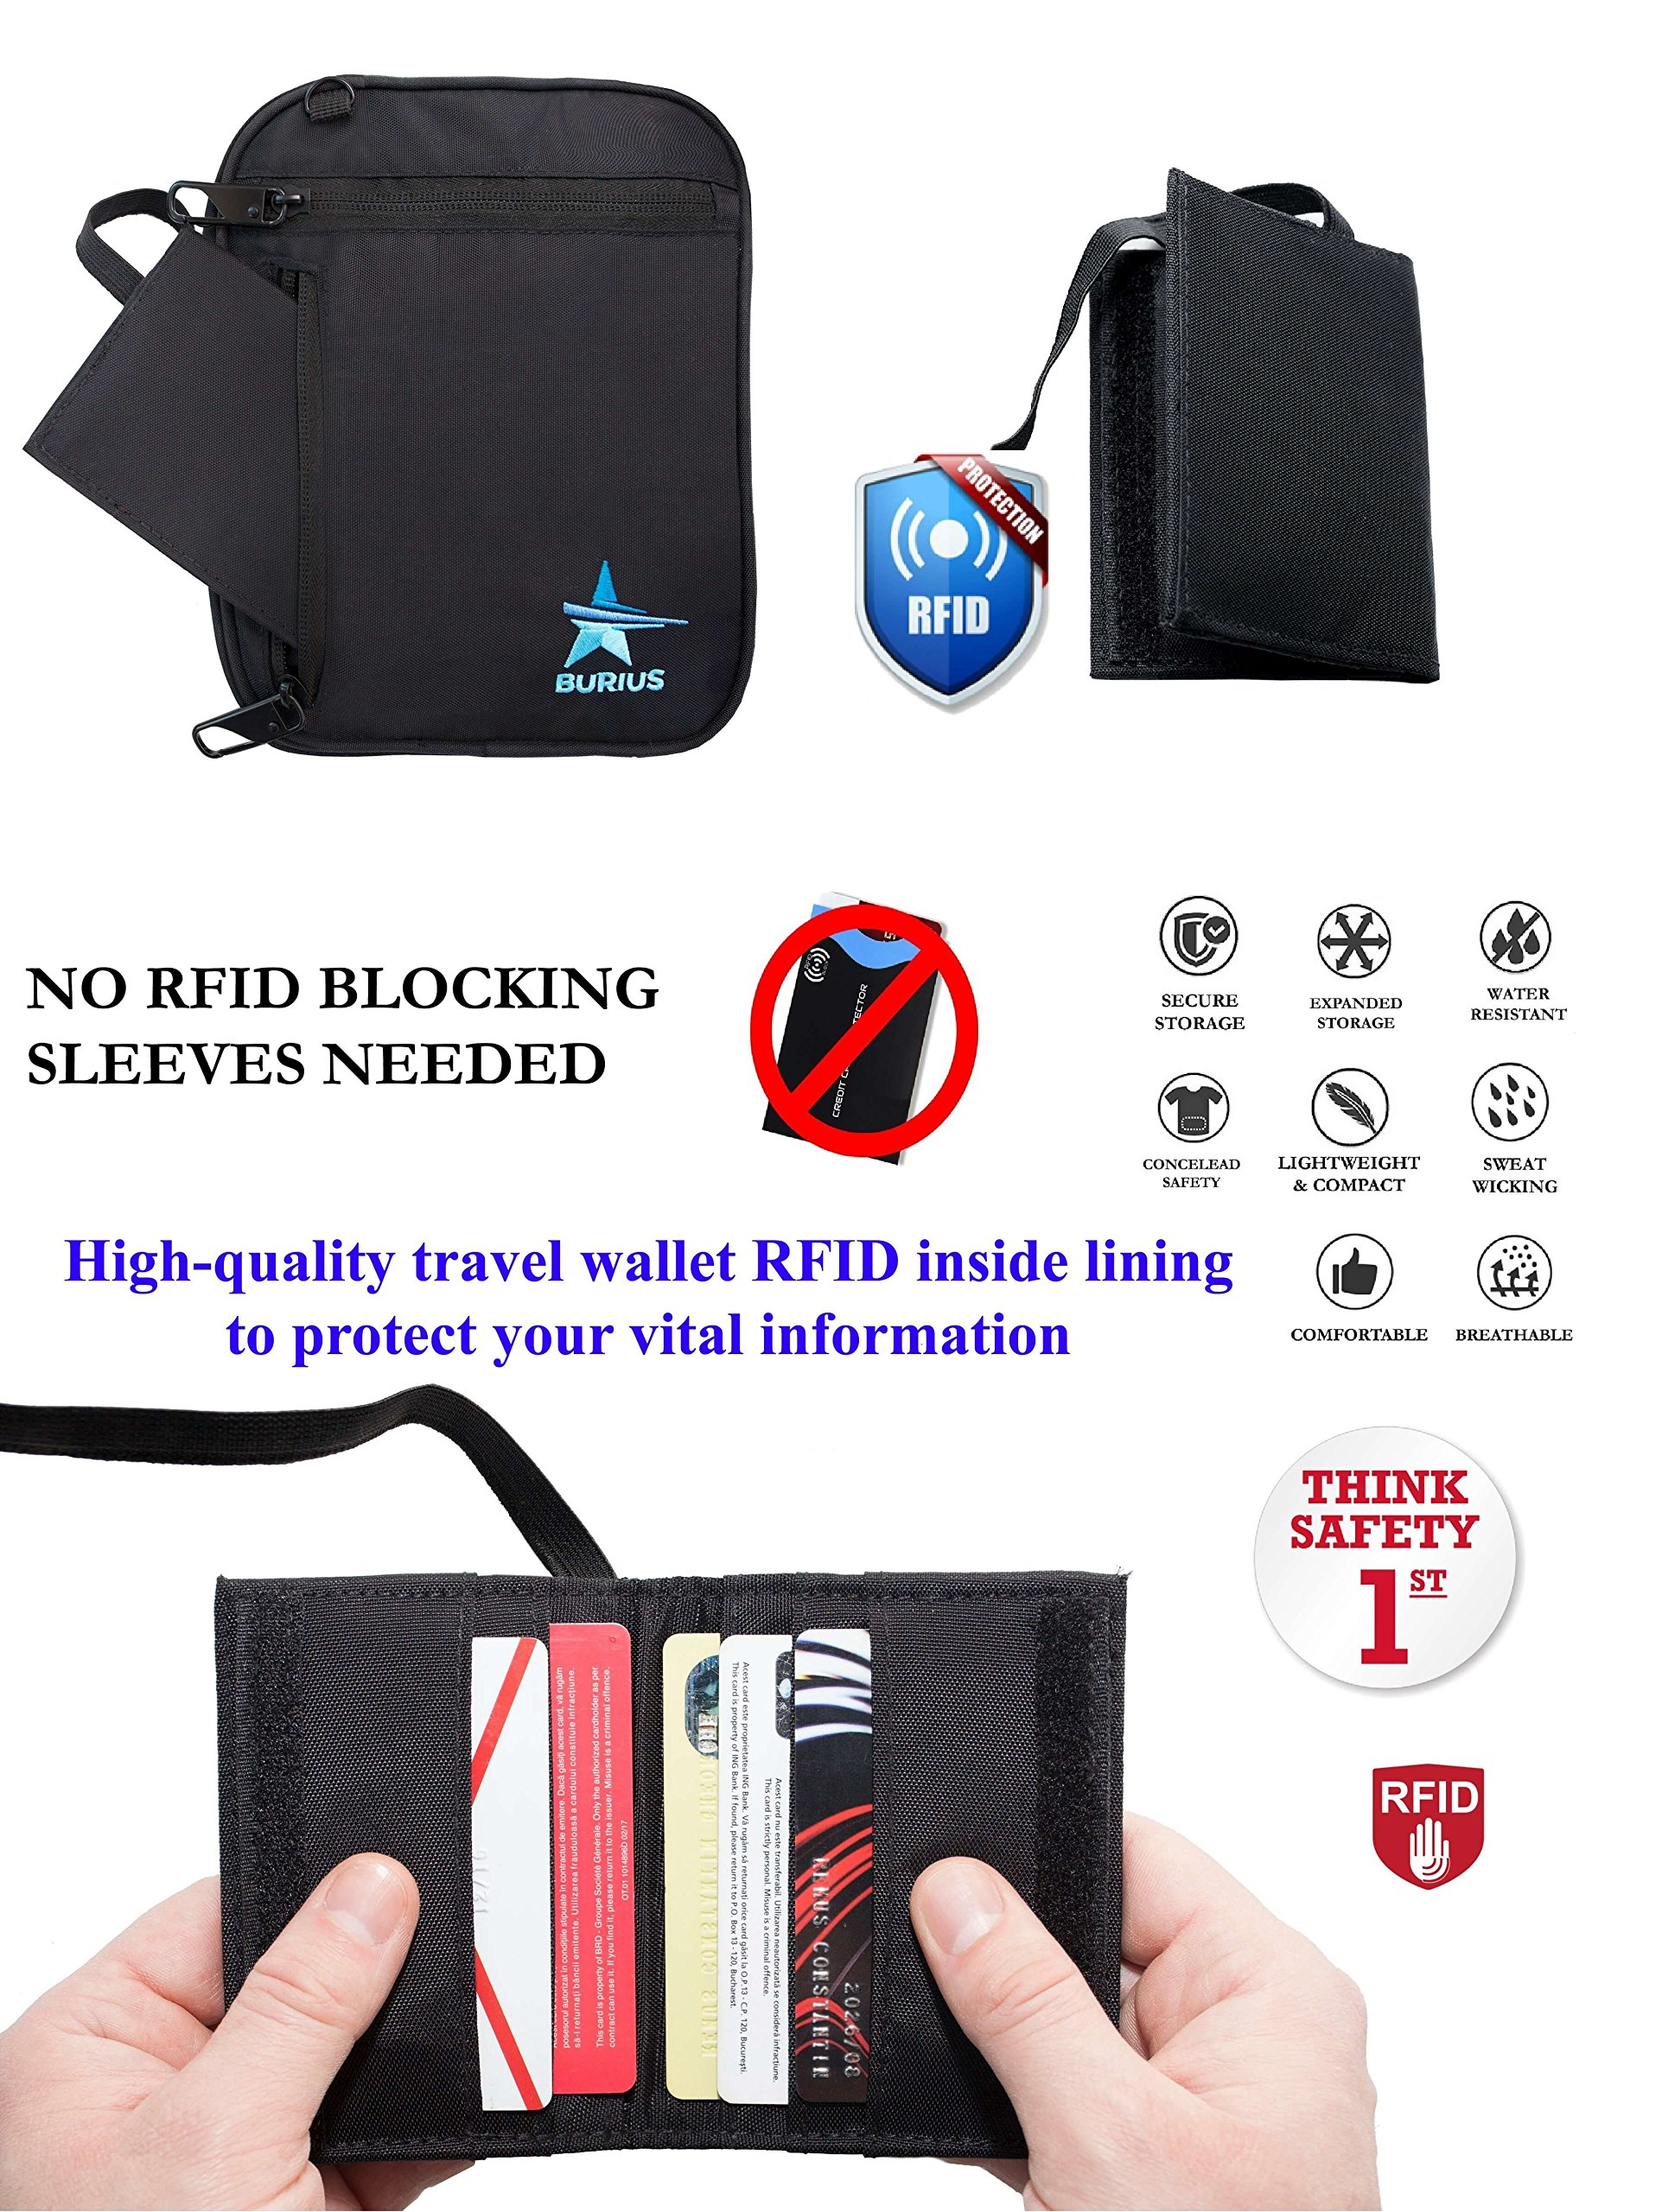 Travel Money Belt: Anti Theft Neck Pouch With Secure Travel Wallet RFID Blocking Made For Your Safety Protection and Comfort - Best Passport Bag Holder For Travelling Ease